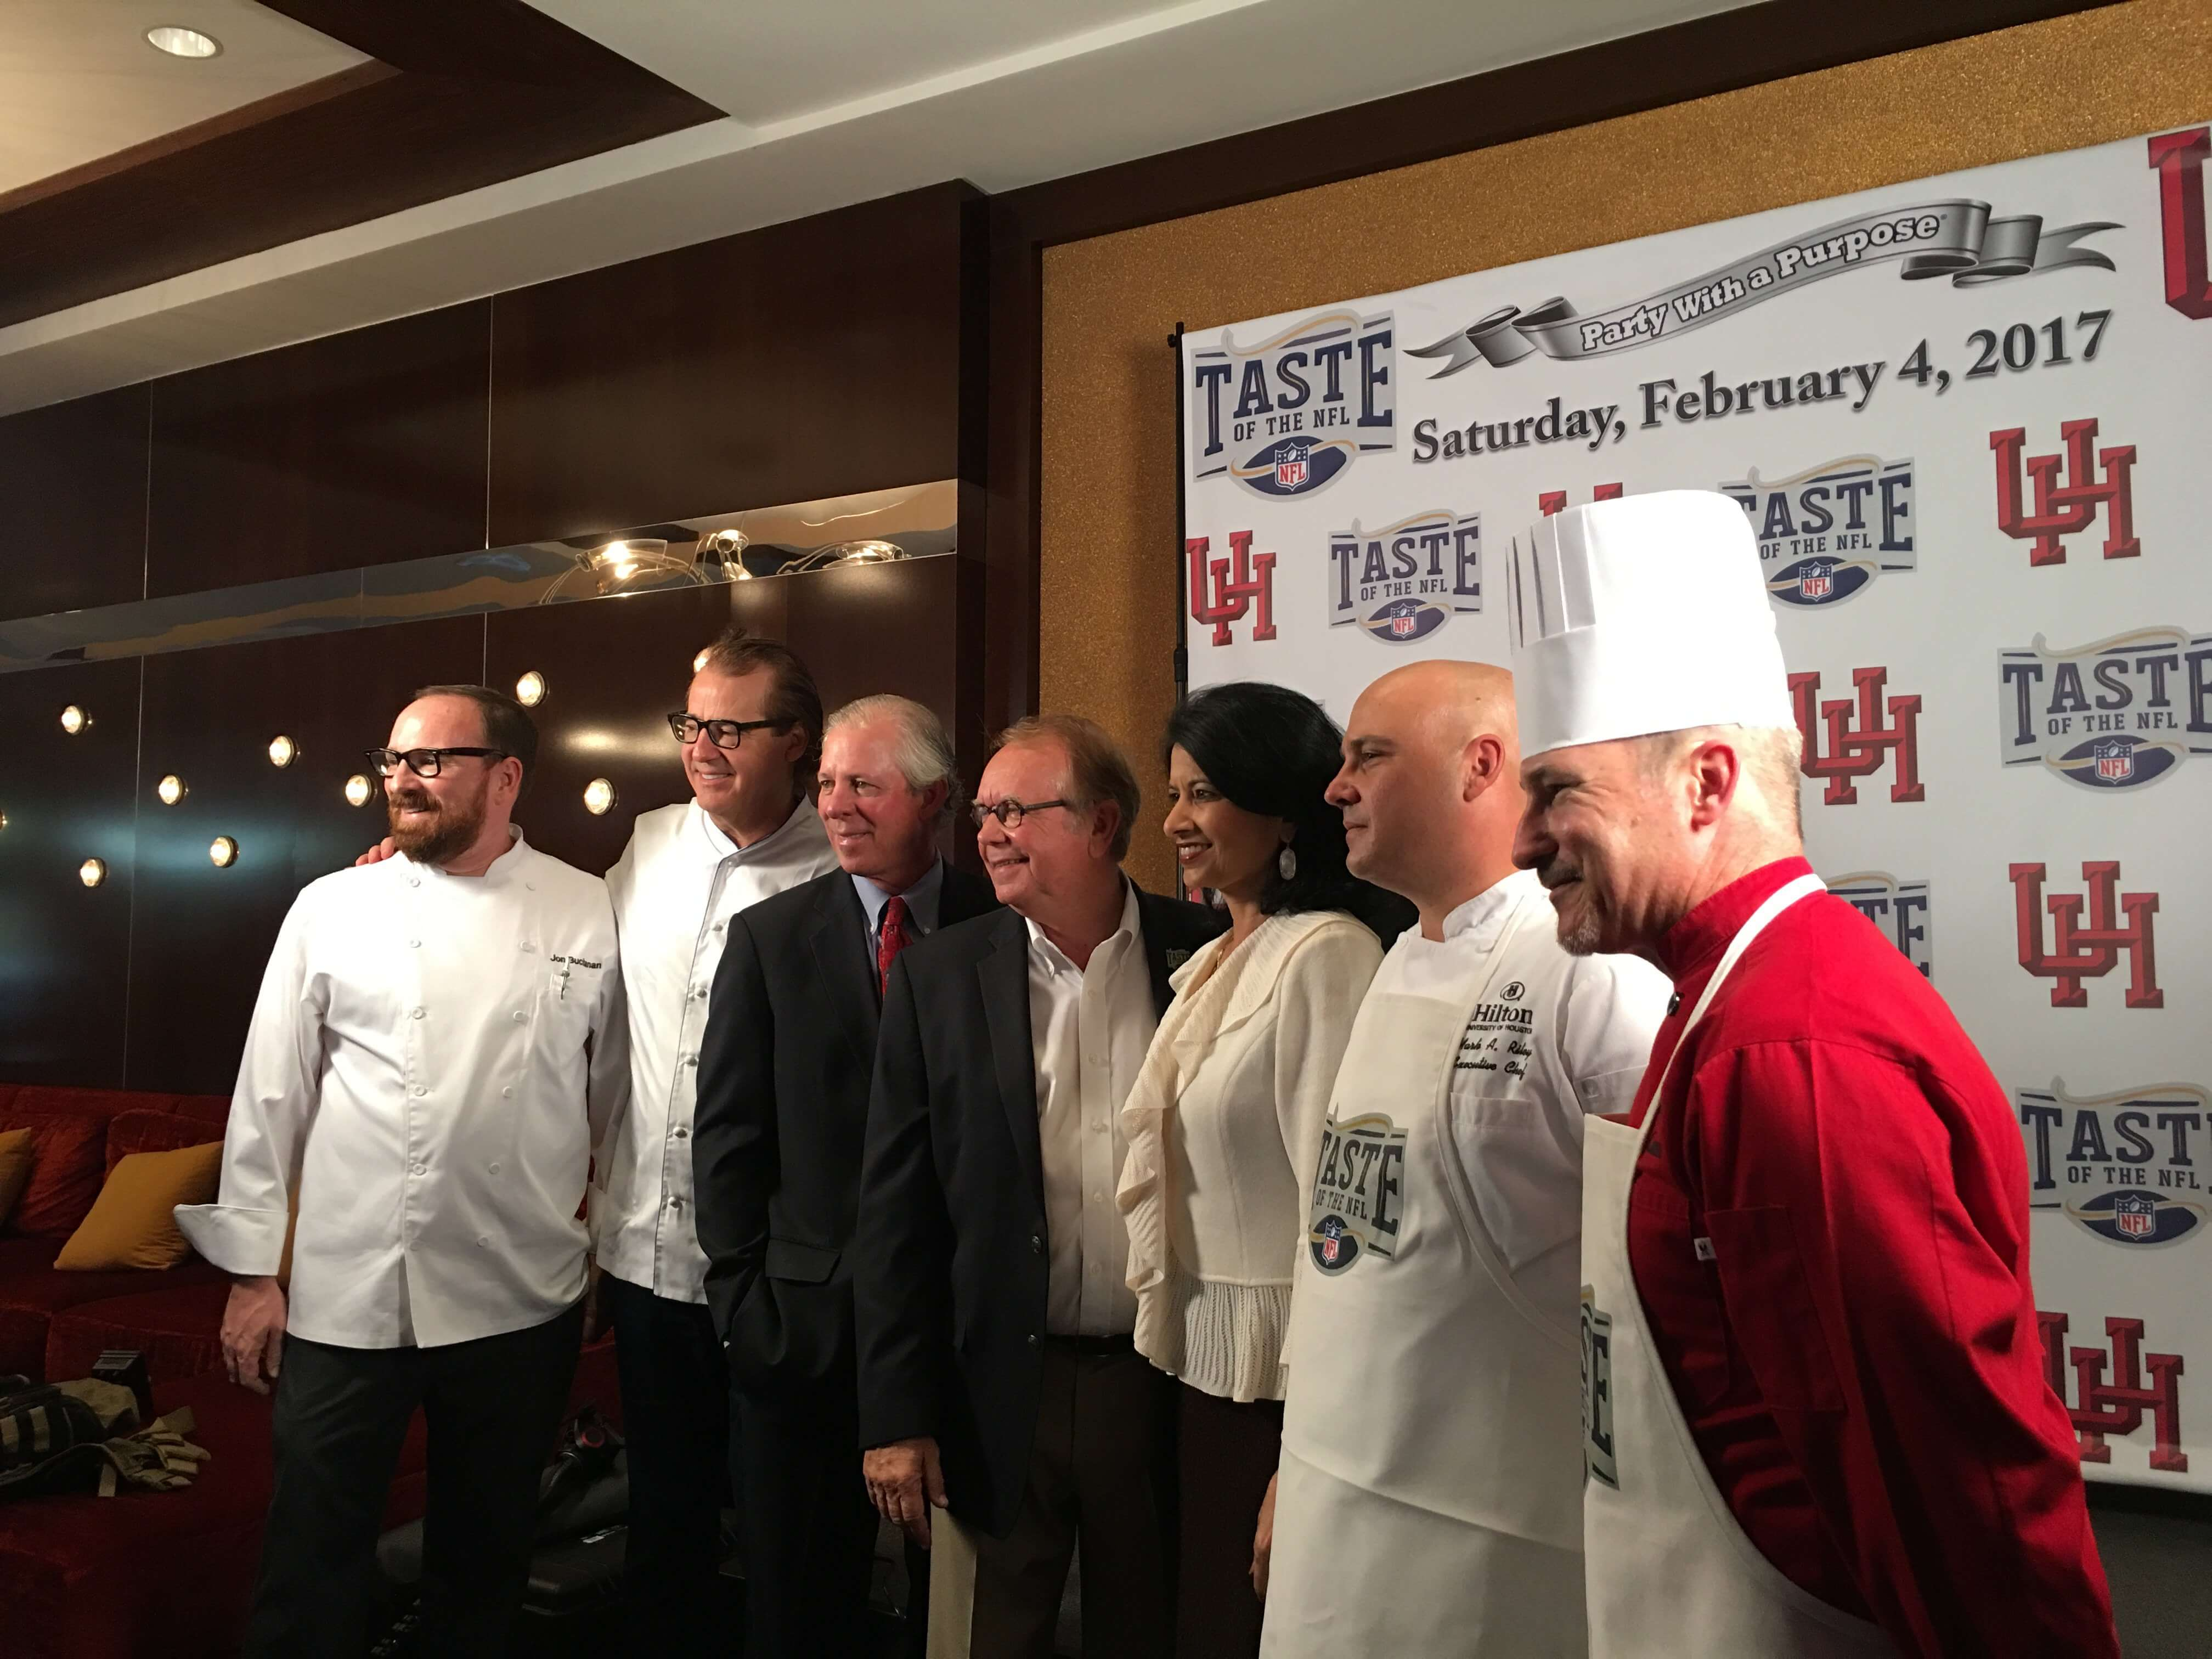 Local chefs join Texas Medical Center president and CEO Robert C. Robbins, Taste of the NFL founder Wayne Kostroski and University of Houston president Renu Khator for the Party with a Purpose kick-off event on Oct. 11.